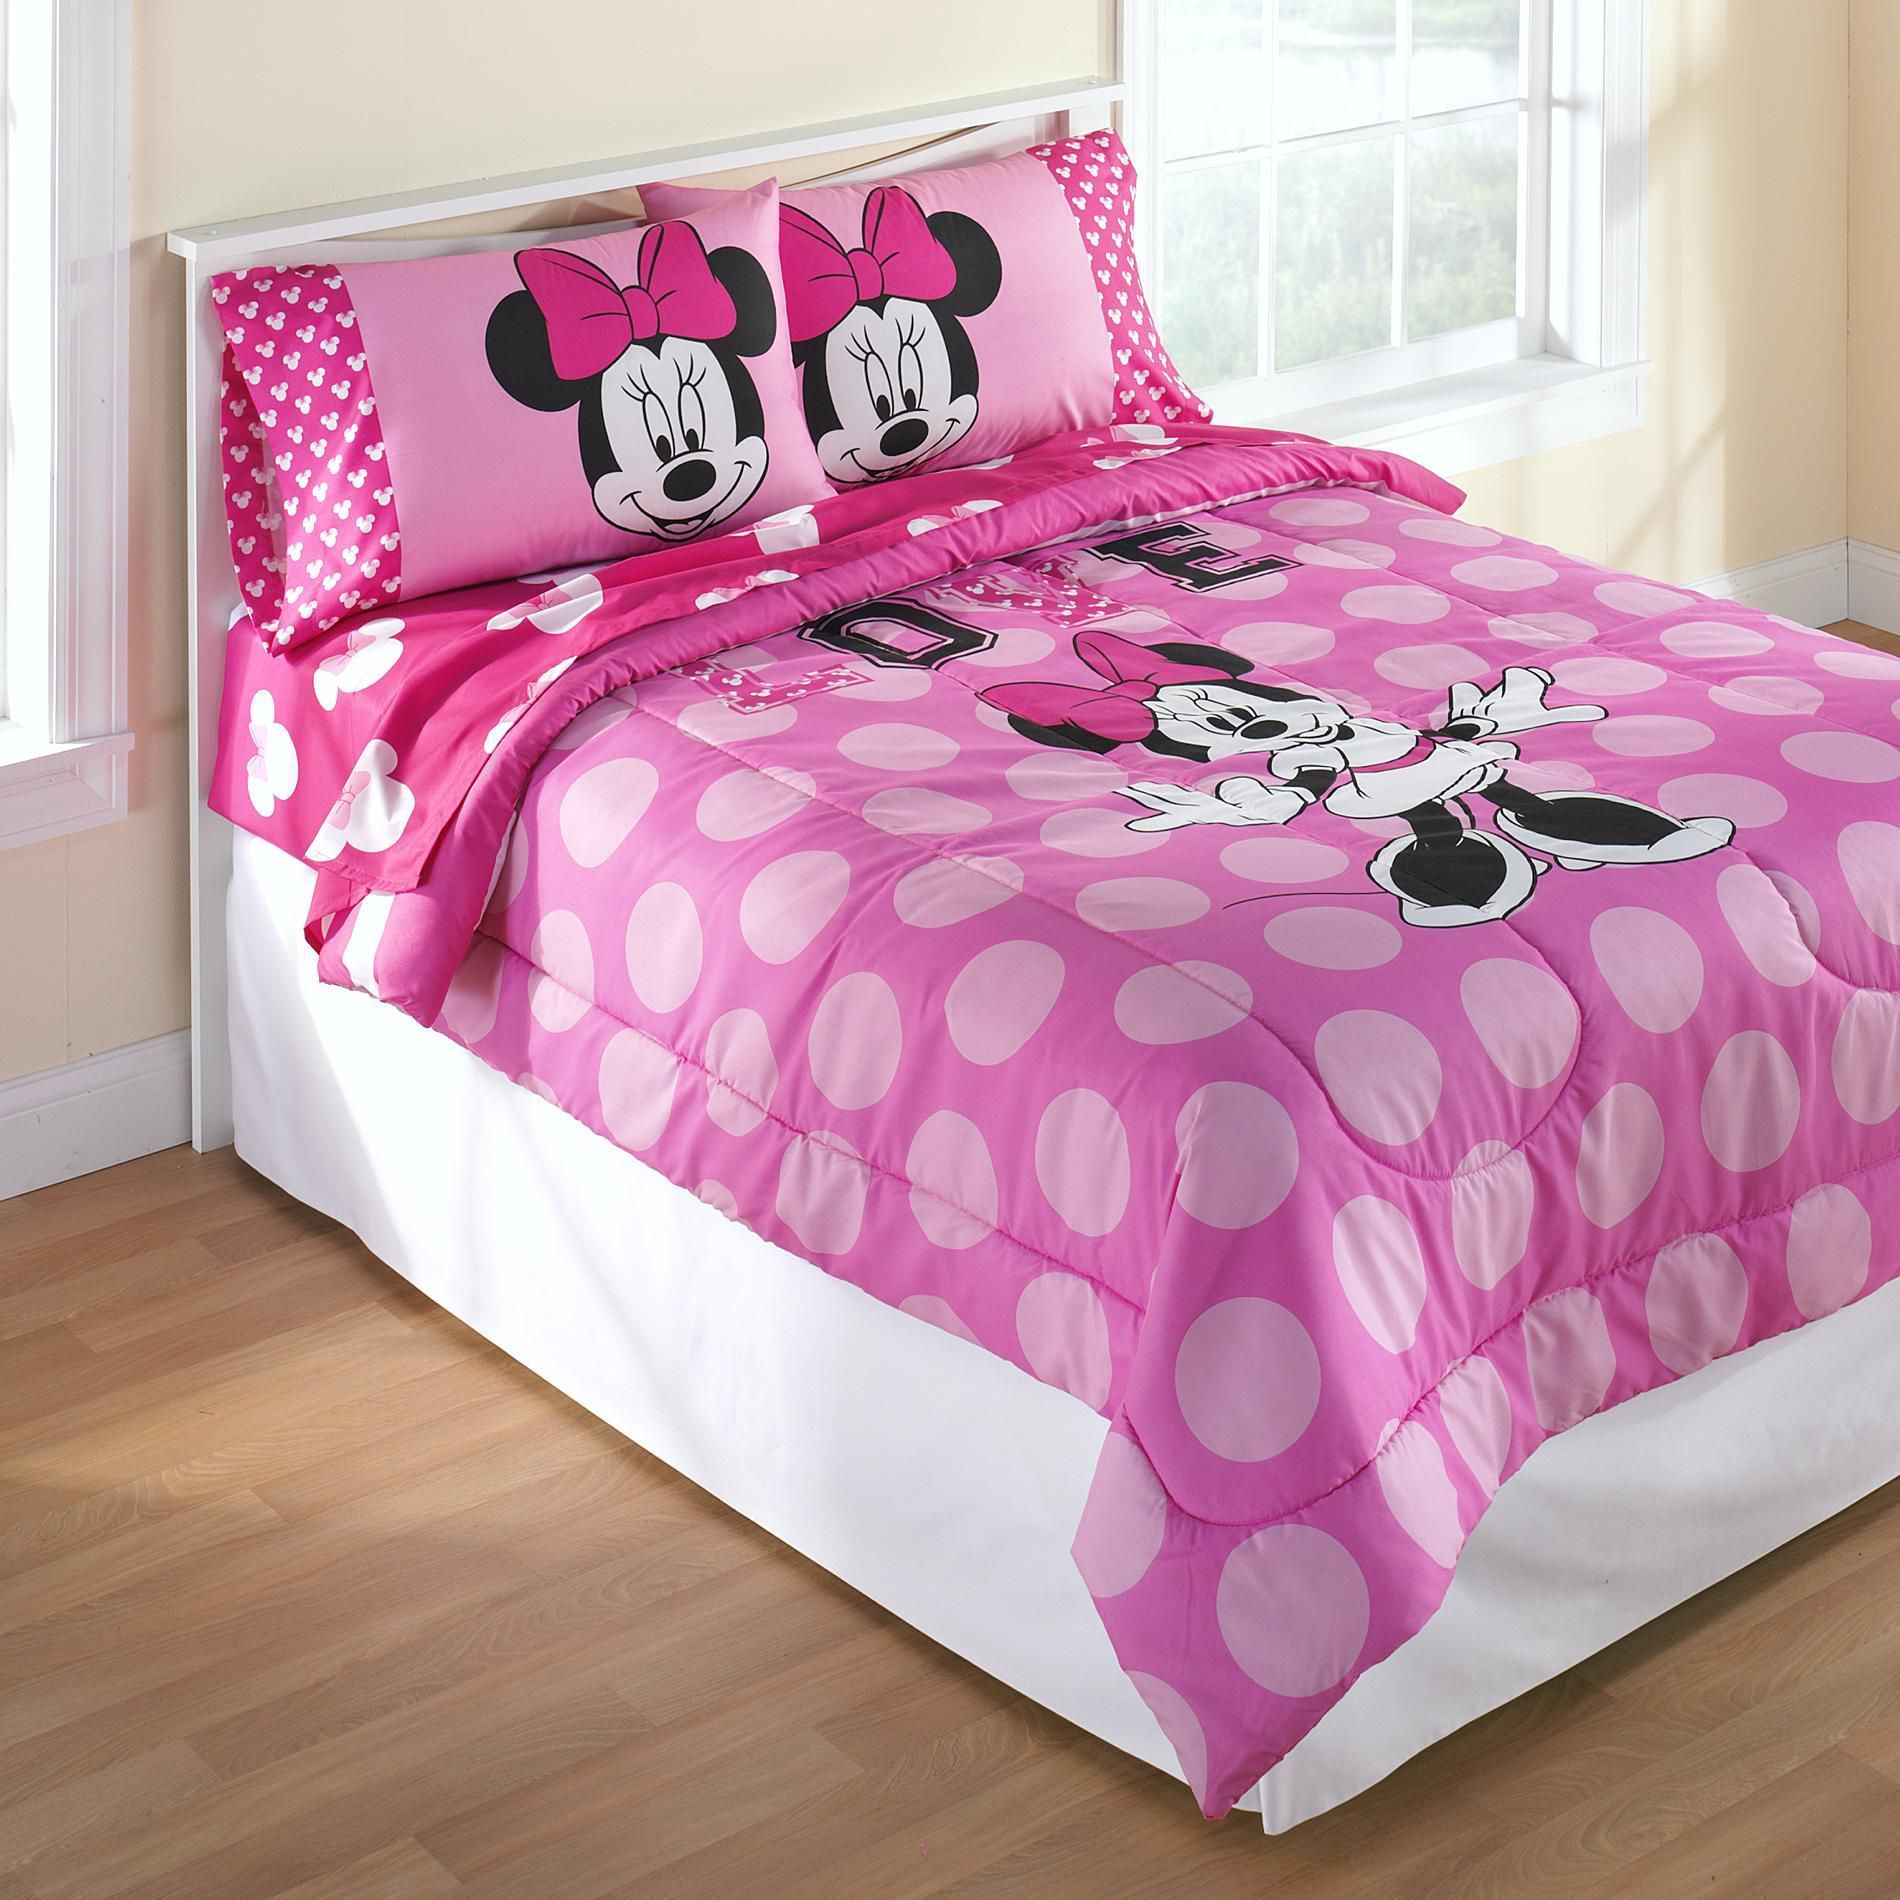 Minnie Mouse Twin Bedding Sets Minnie Mouse Bedding Minnie